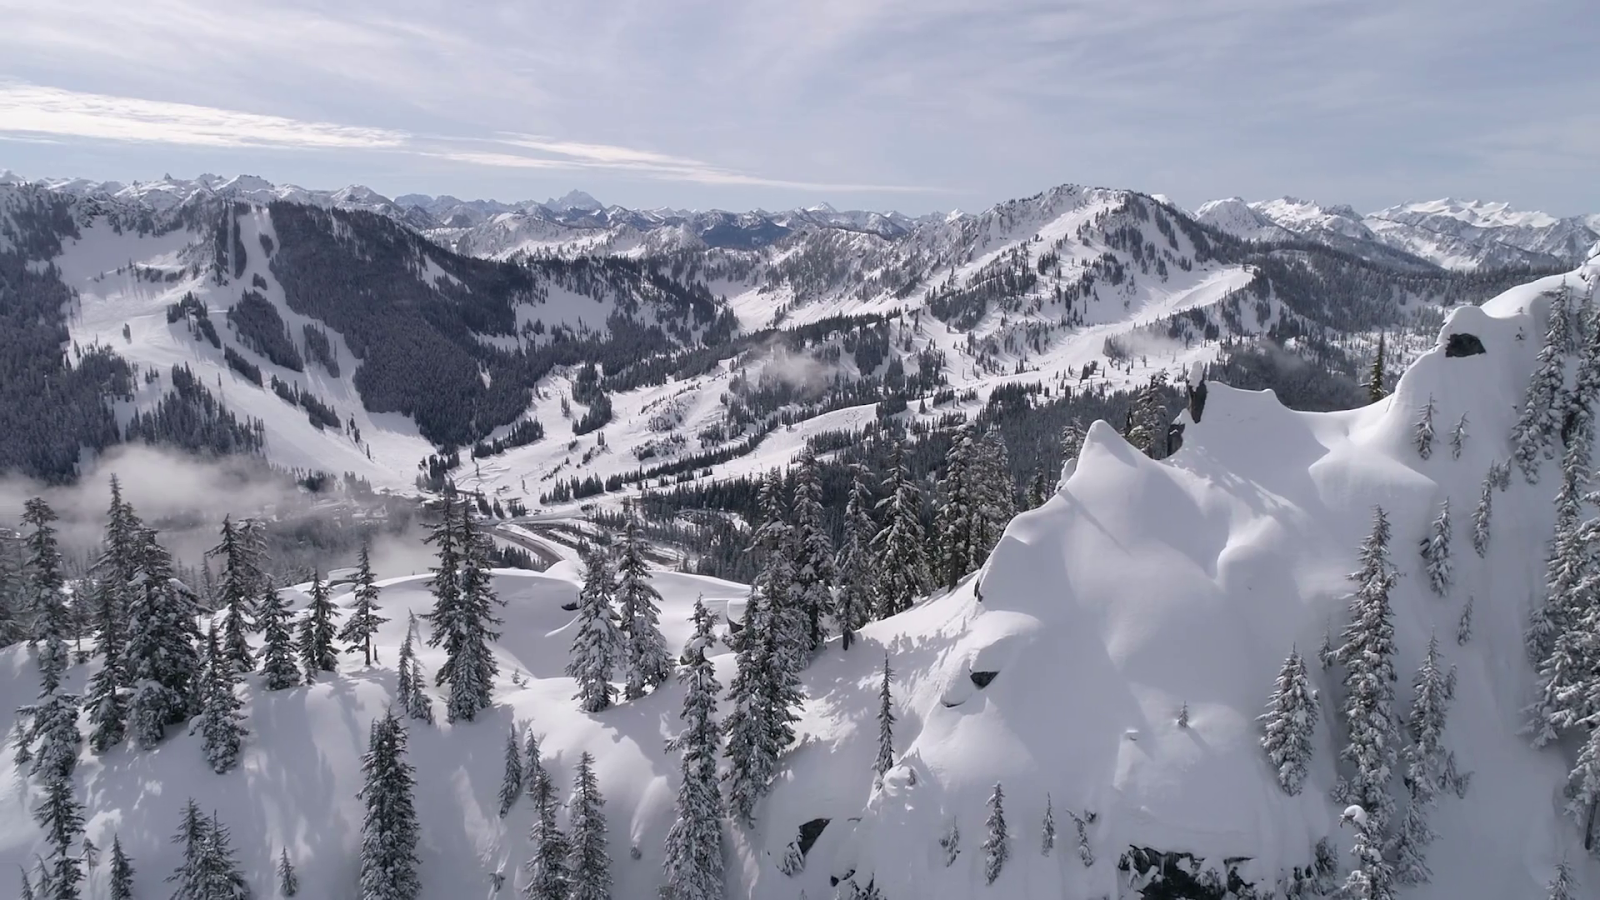 ski paradise: vail resorts closes its acquisition of stevens pass resort